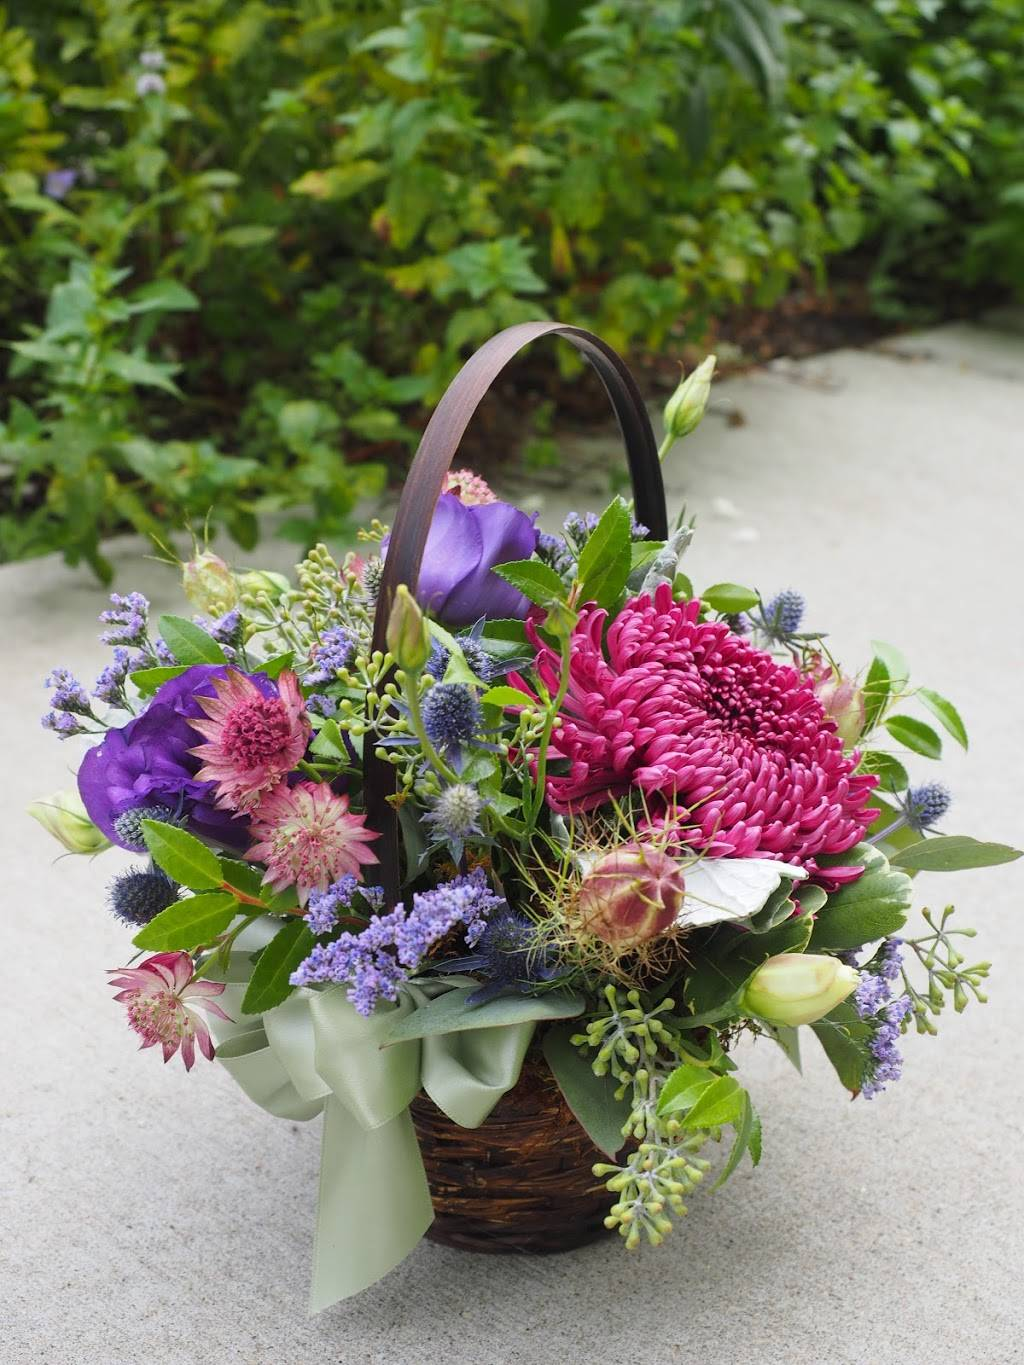 Your Enchanted Florist - florist  | Photo 6 of 9 | Address: 1500 Dale St N, St Paul, MN 55117, USA | Phone: (651) 488-2018